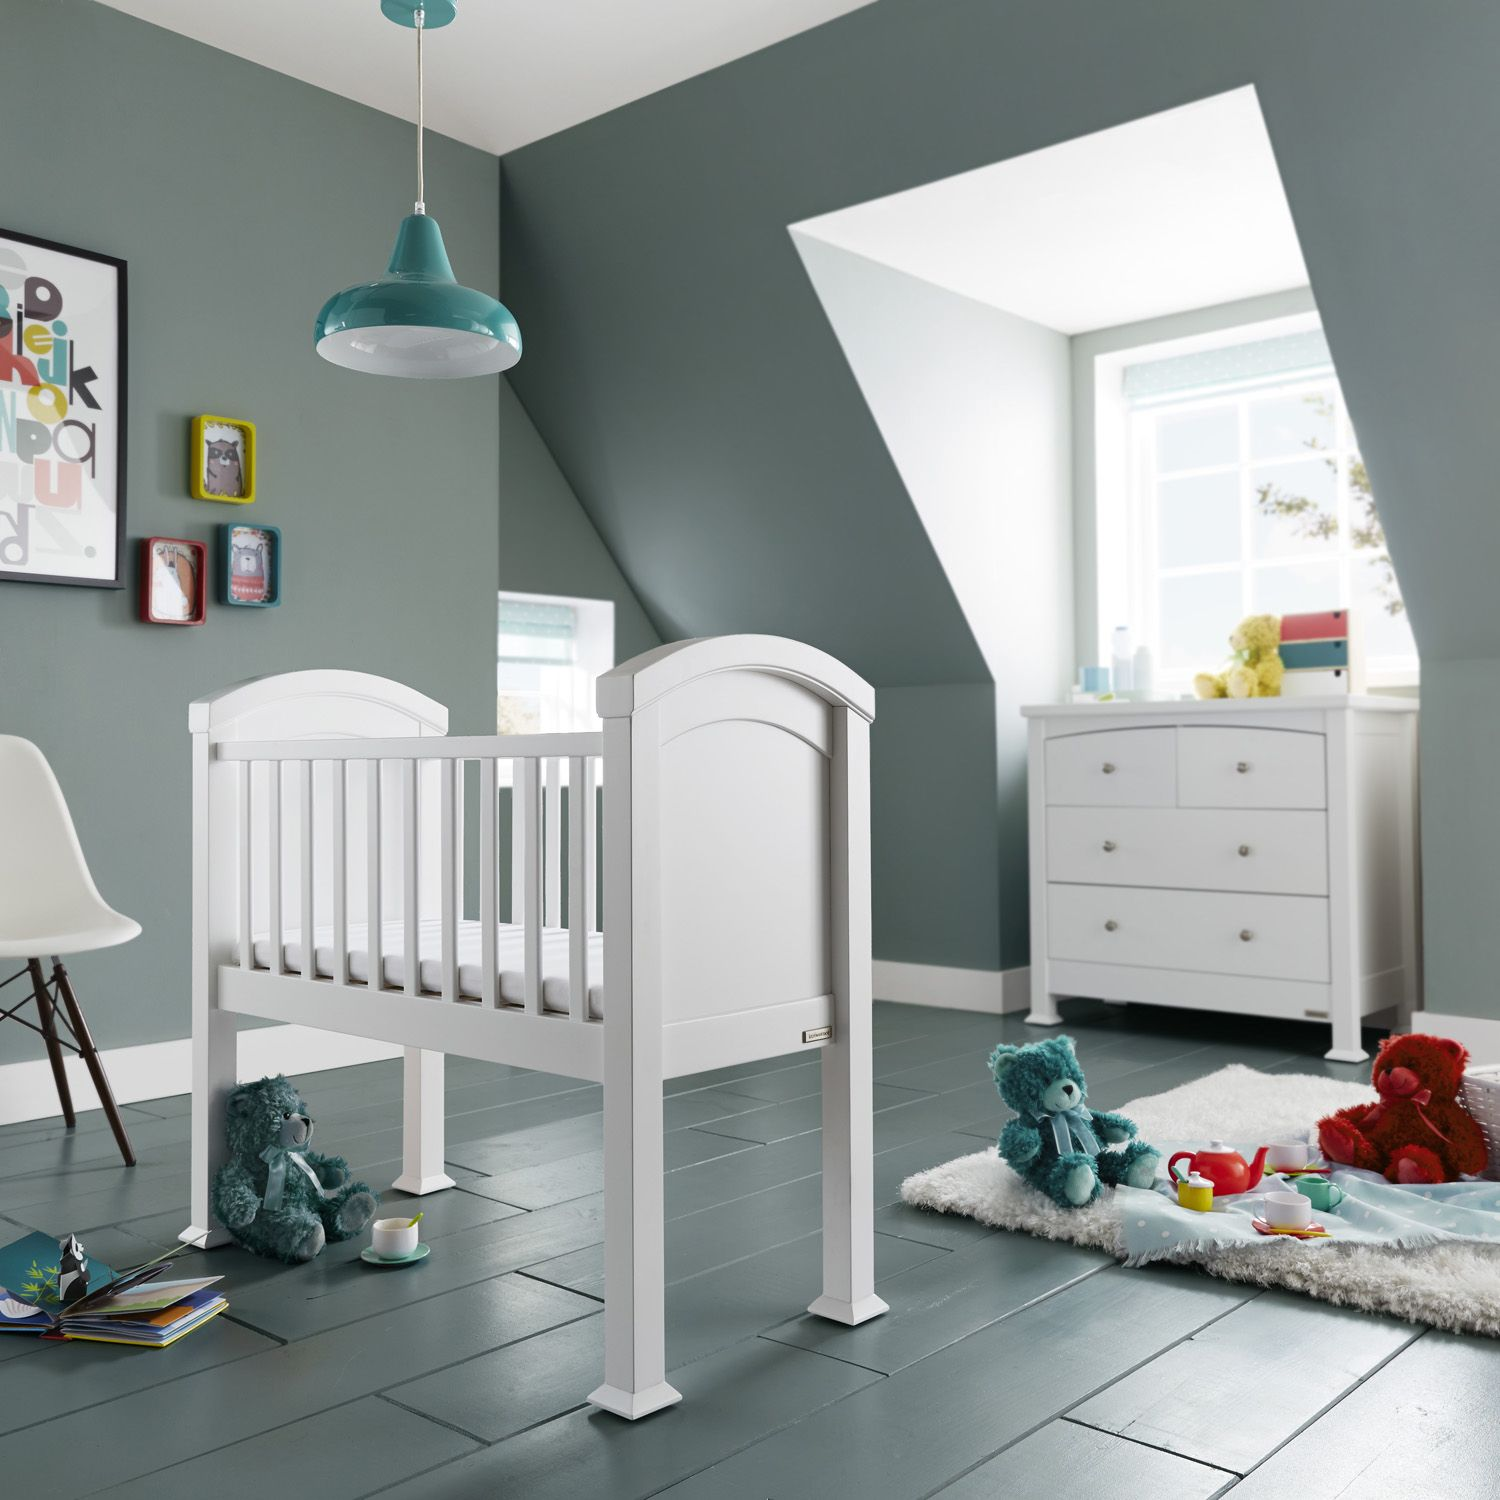 Tranquillity crib cribs izziwotnot collection pinterest baby